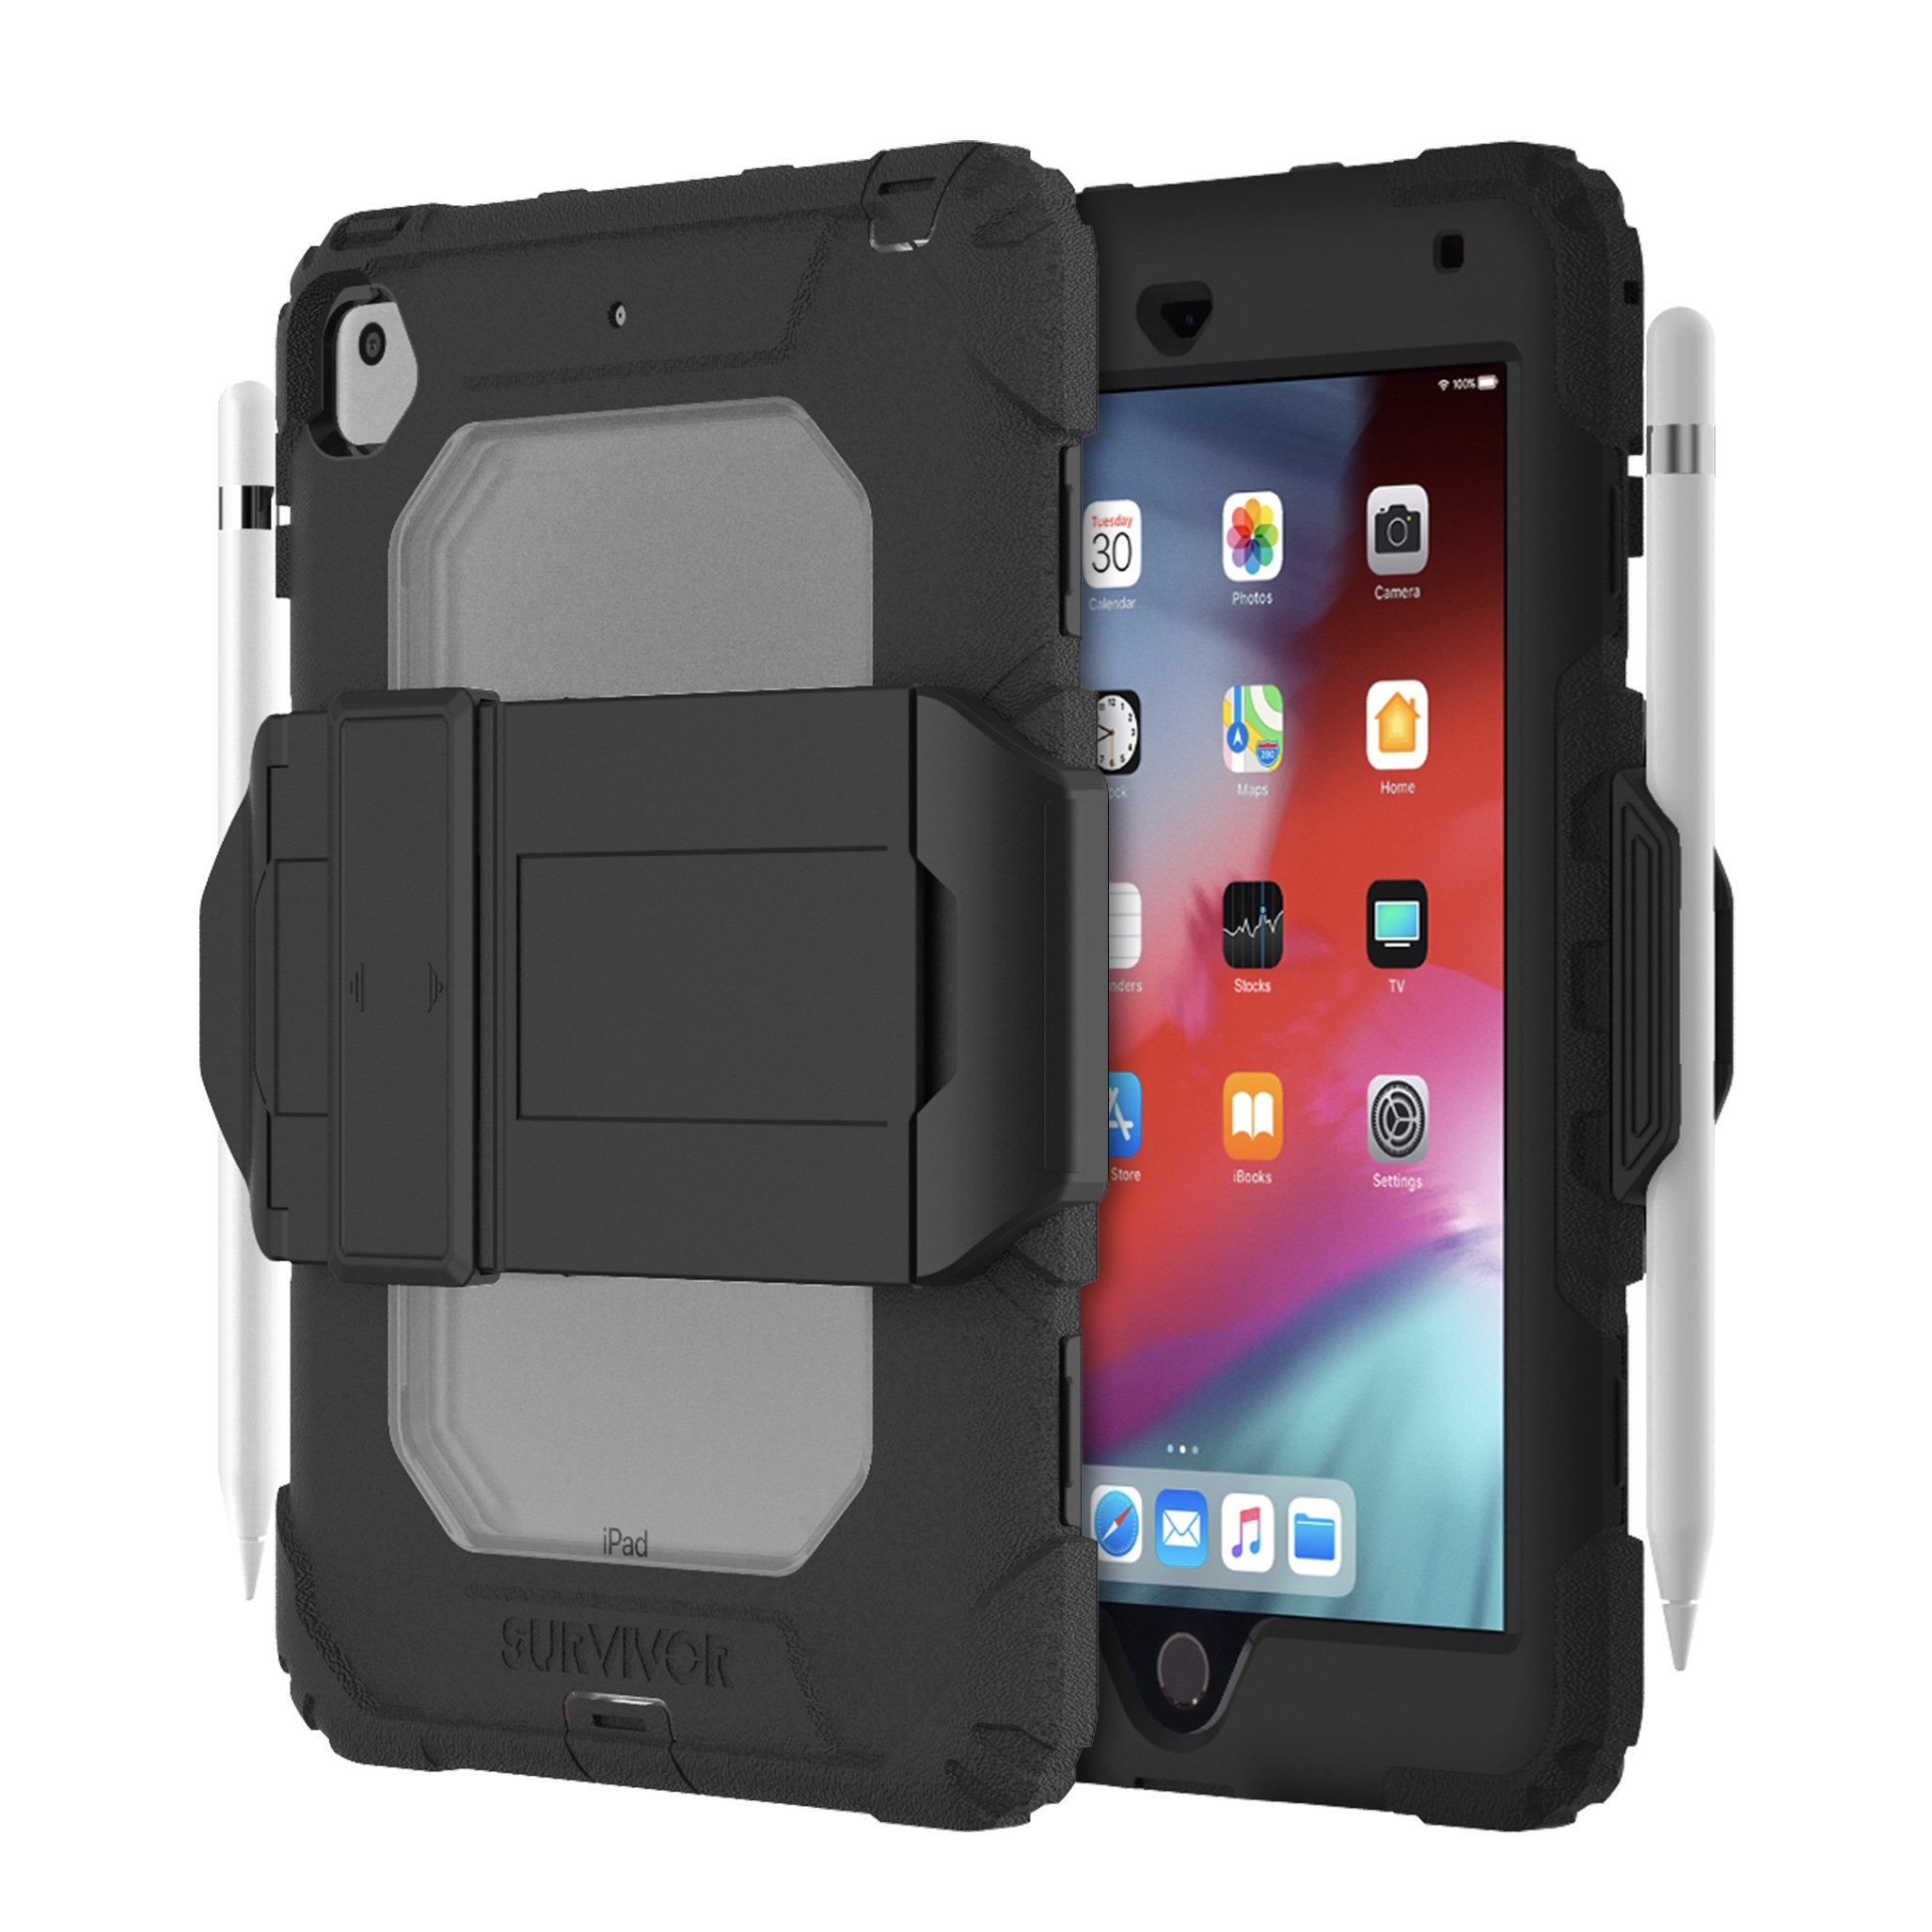 iPAD Mini 5 2019 Coque de protection renforcee Survivor All Terrain